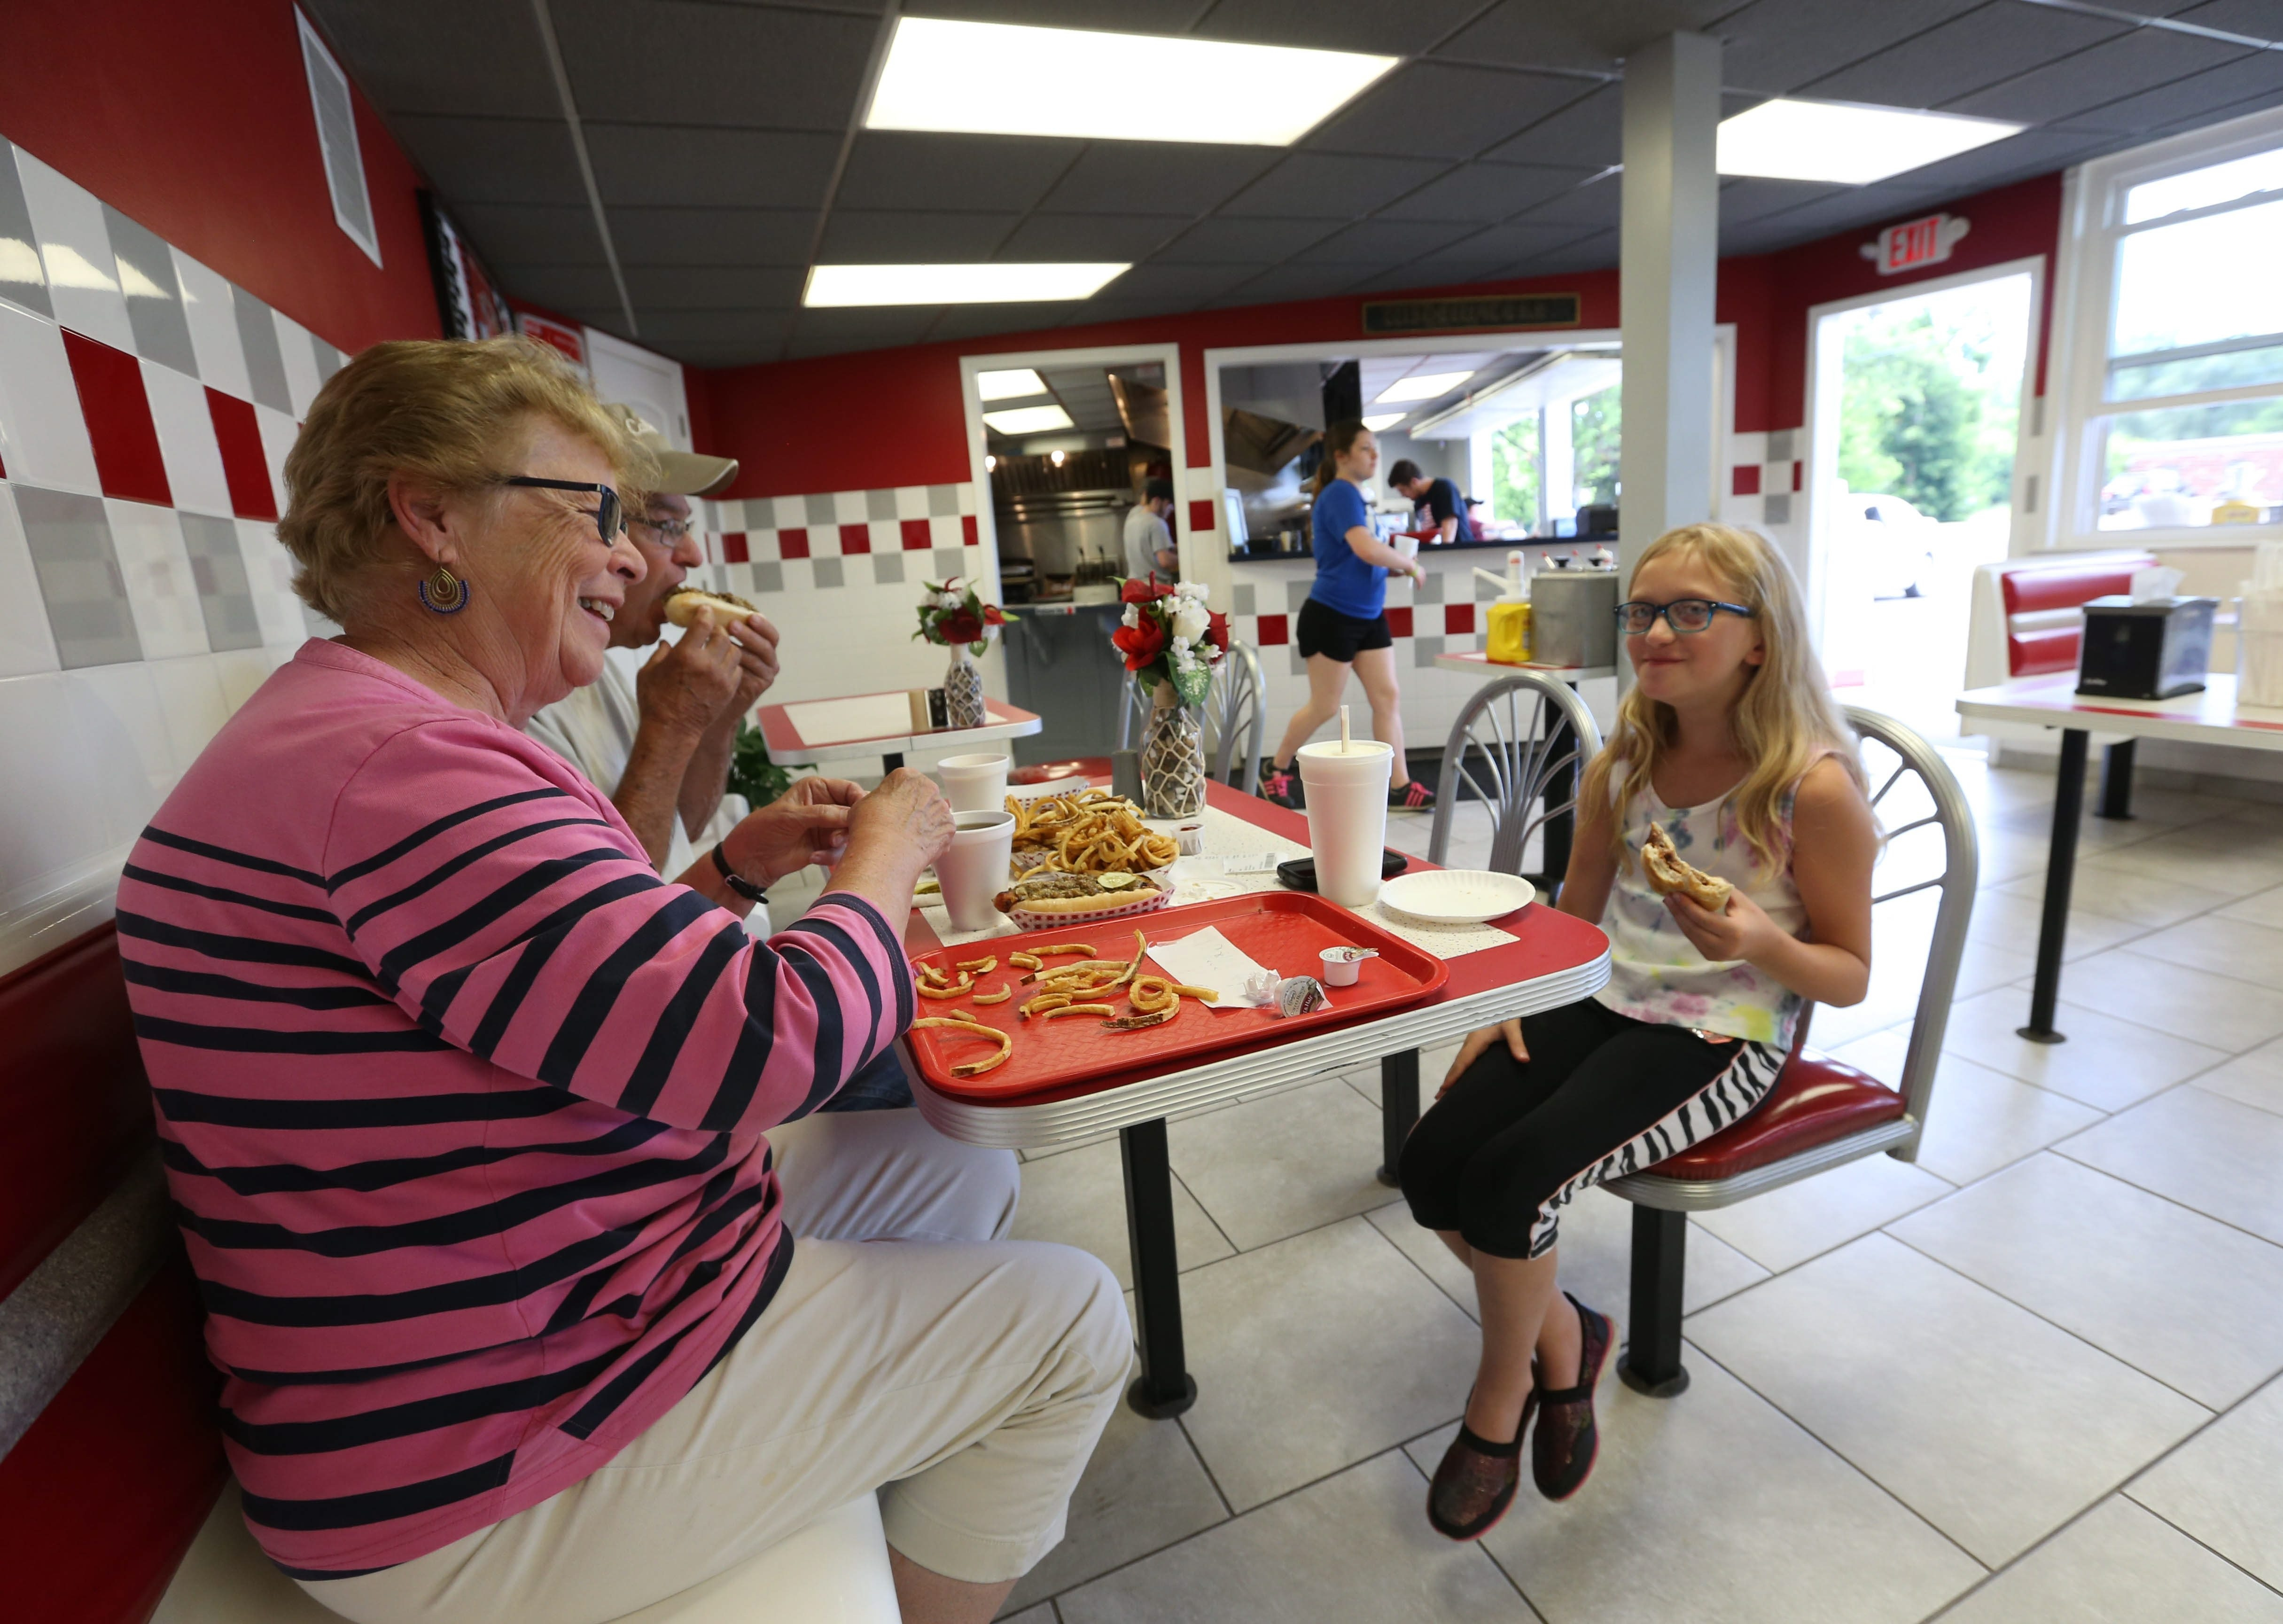 Judy and Marv Farnham of Lockport have dinner with their granddaughter Karina Farnham, 9, of Ransomville. Below, the Coney Island hot dog. See a photo gallery at buffalonews.com.